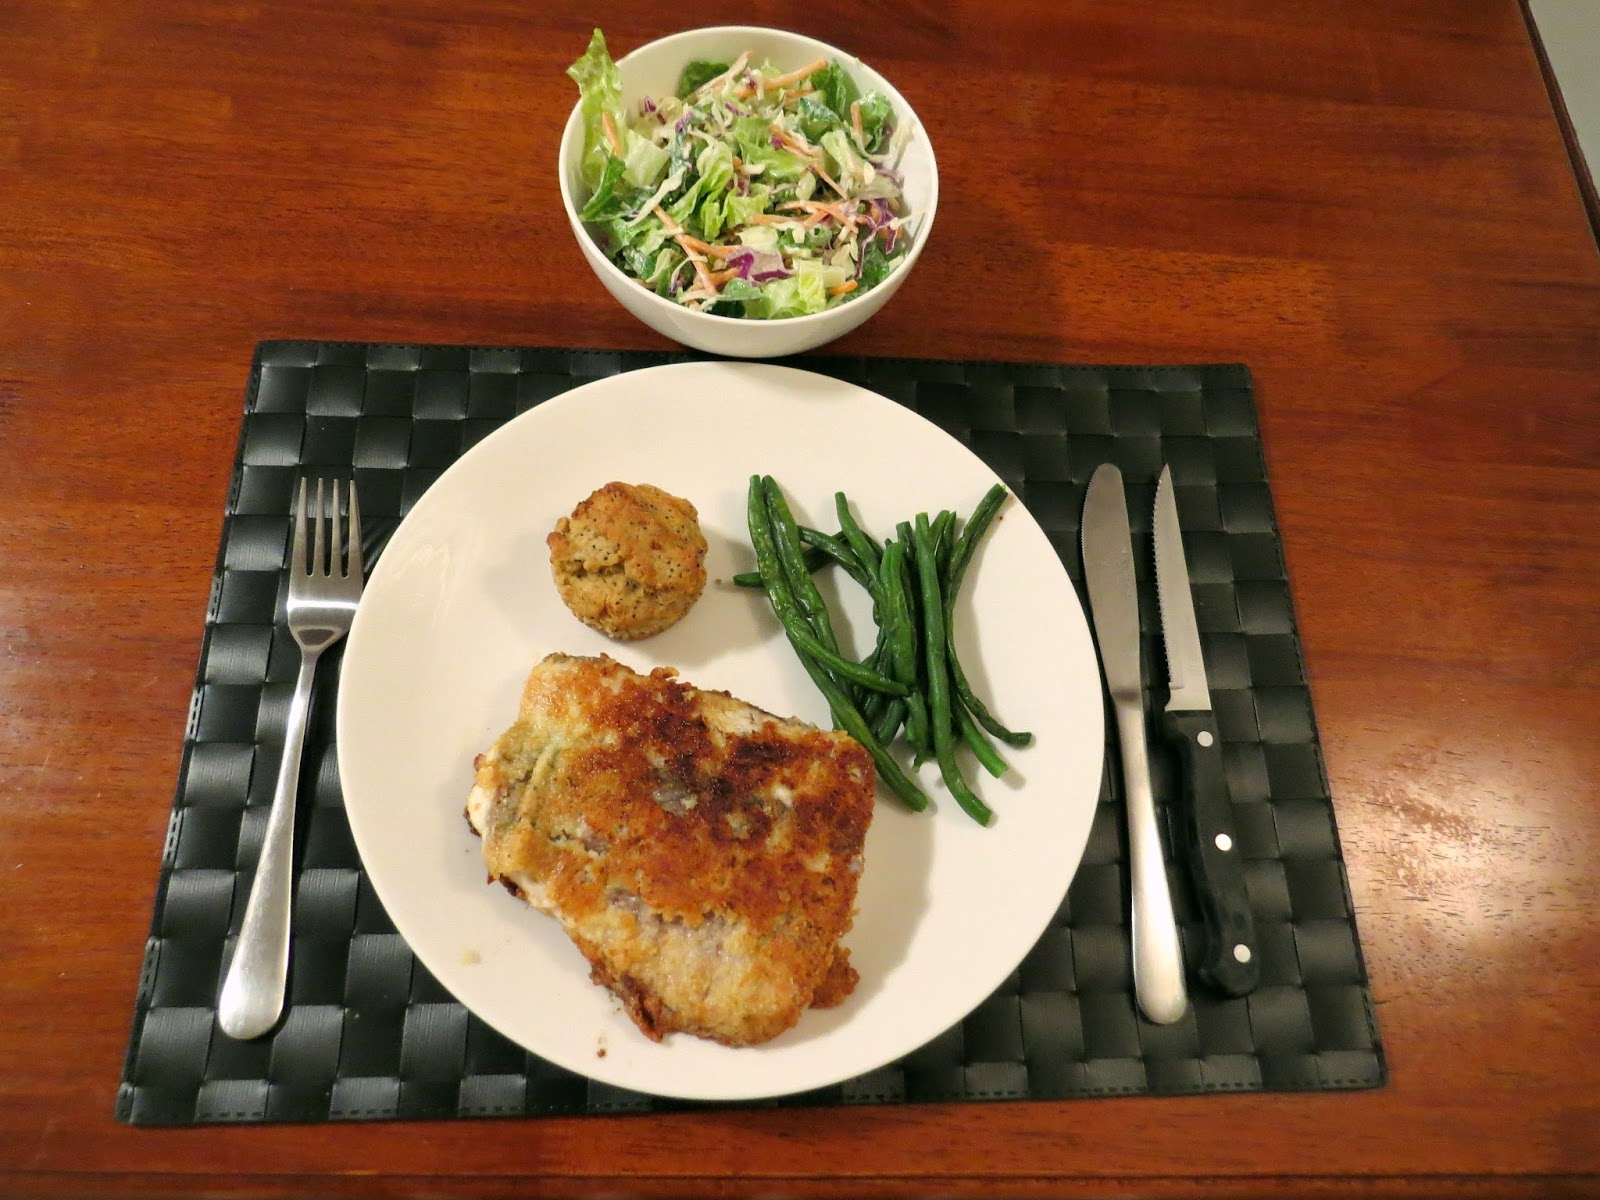 dinner of lightly battered and seasoned fish with egg and almond flour, sautéed in coconut and olive oil Barramundi, fresh organic green beans, homemade LC muffin, and salad